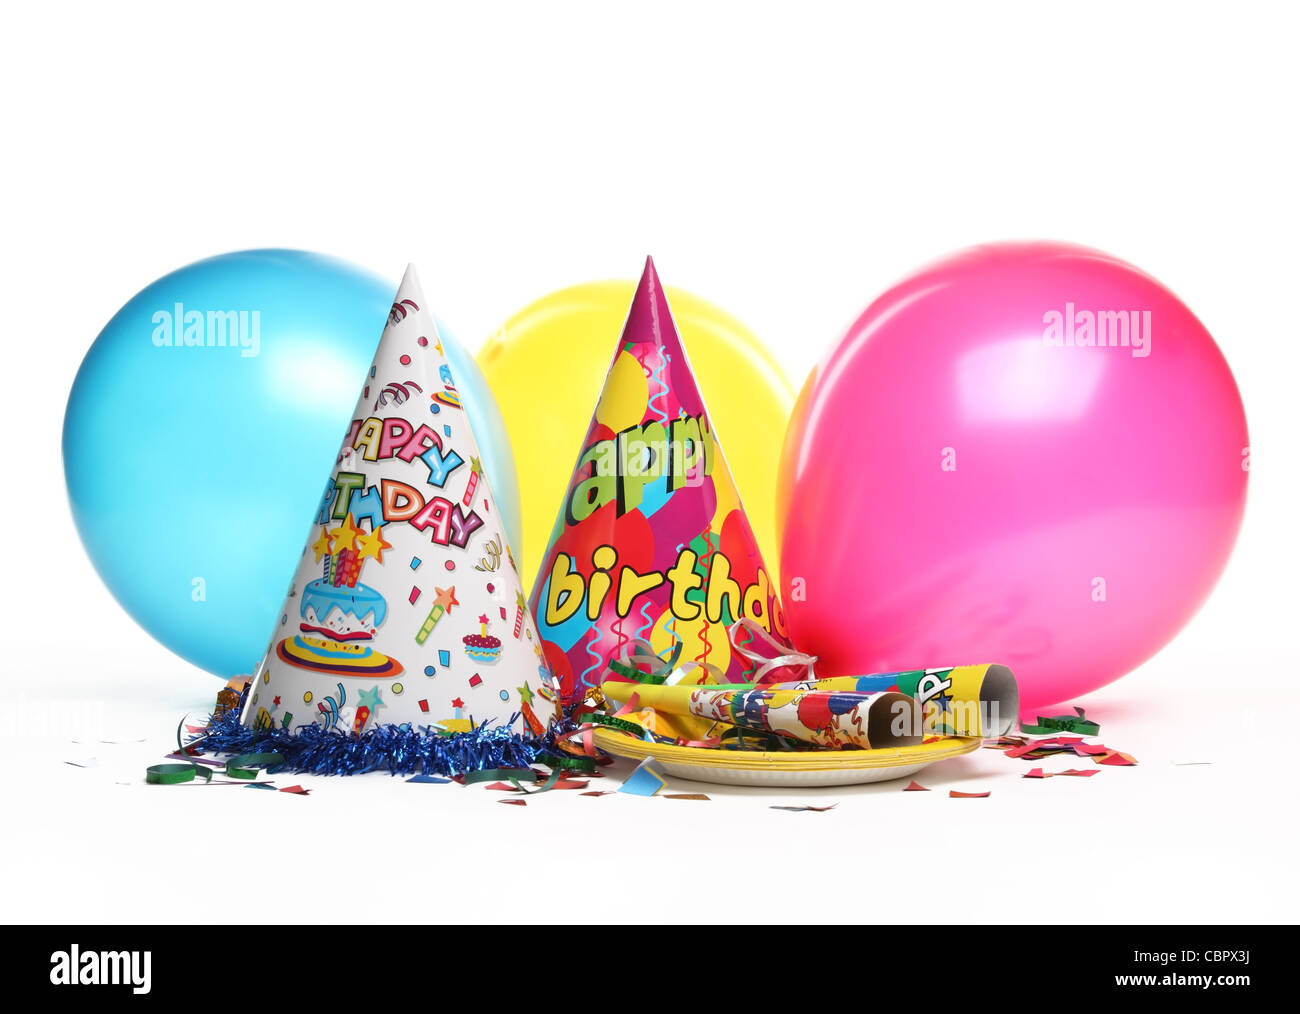 Birthday party decorations isolated on white. - Stock Image